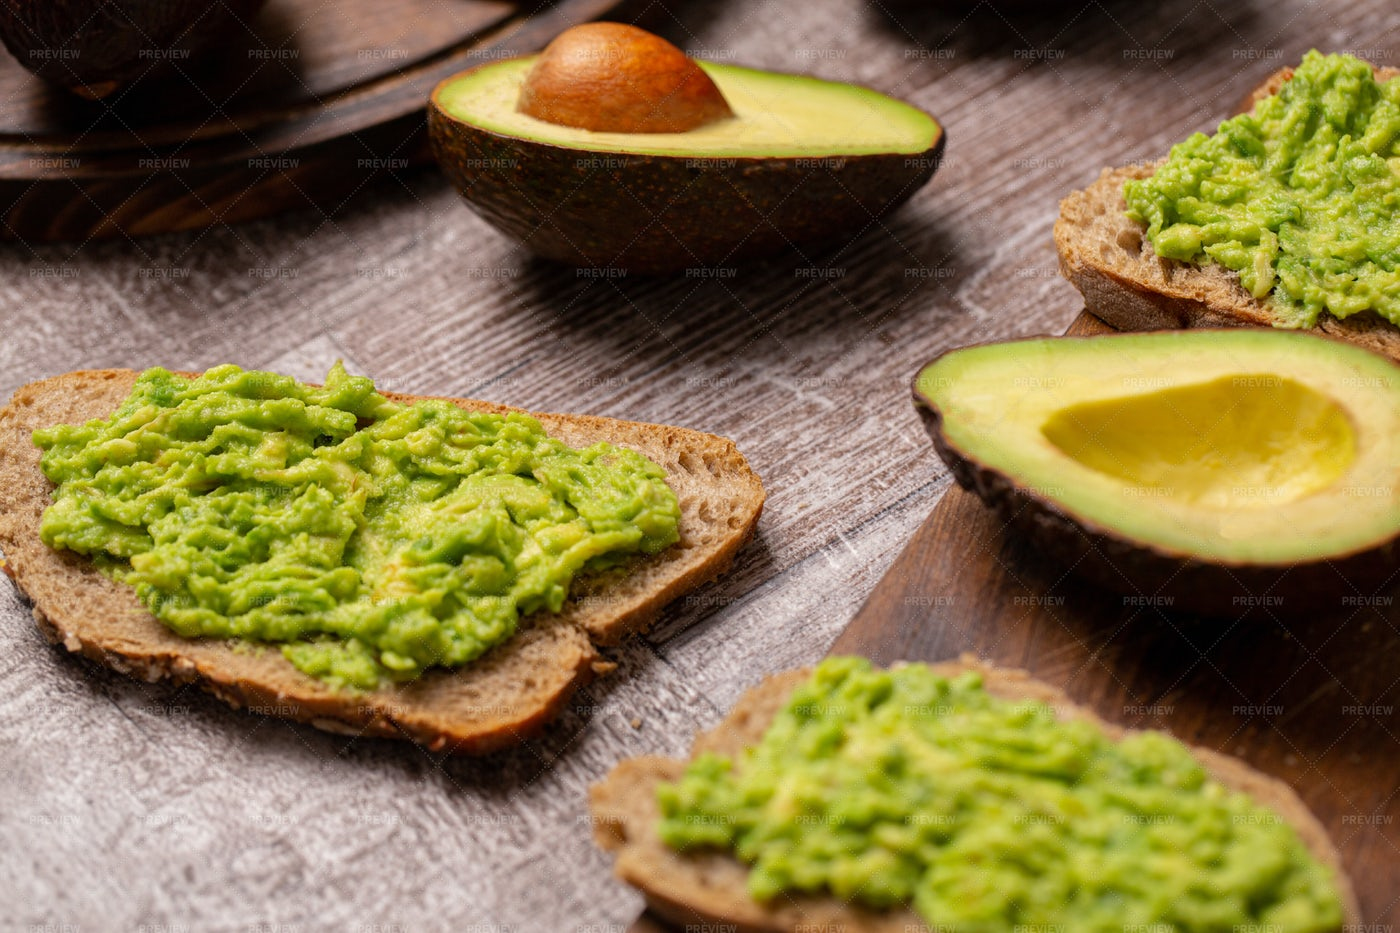 Avocado Sandwiches Next To Cutted Ones: Stock Photos